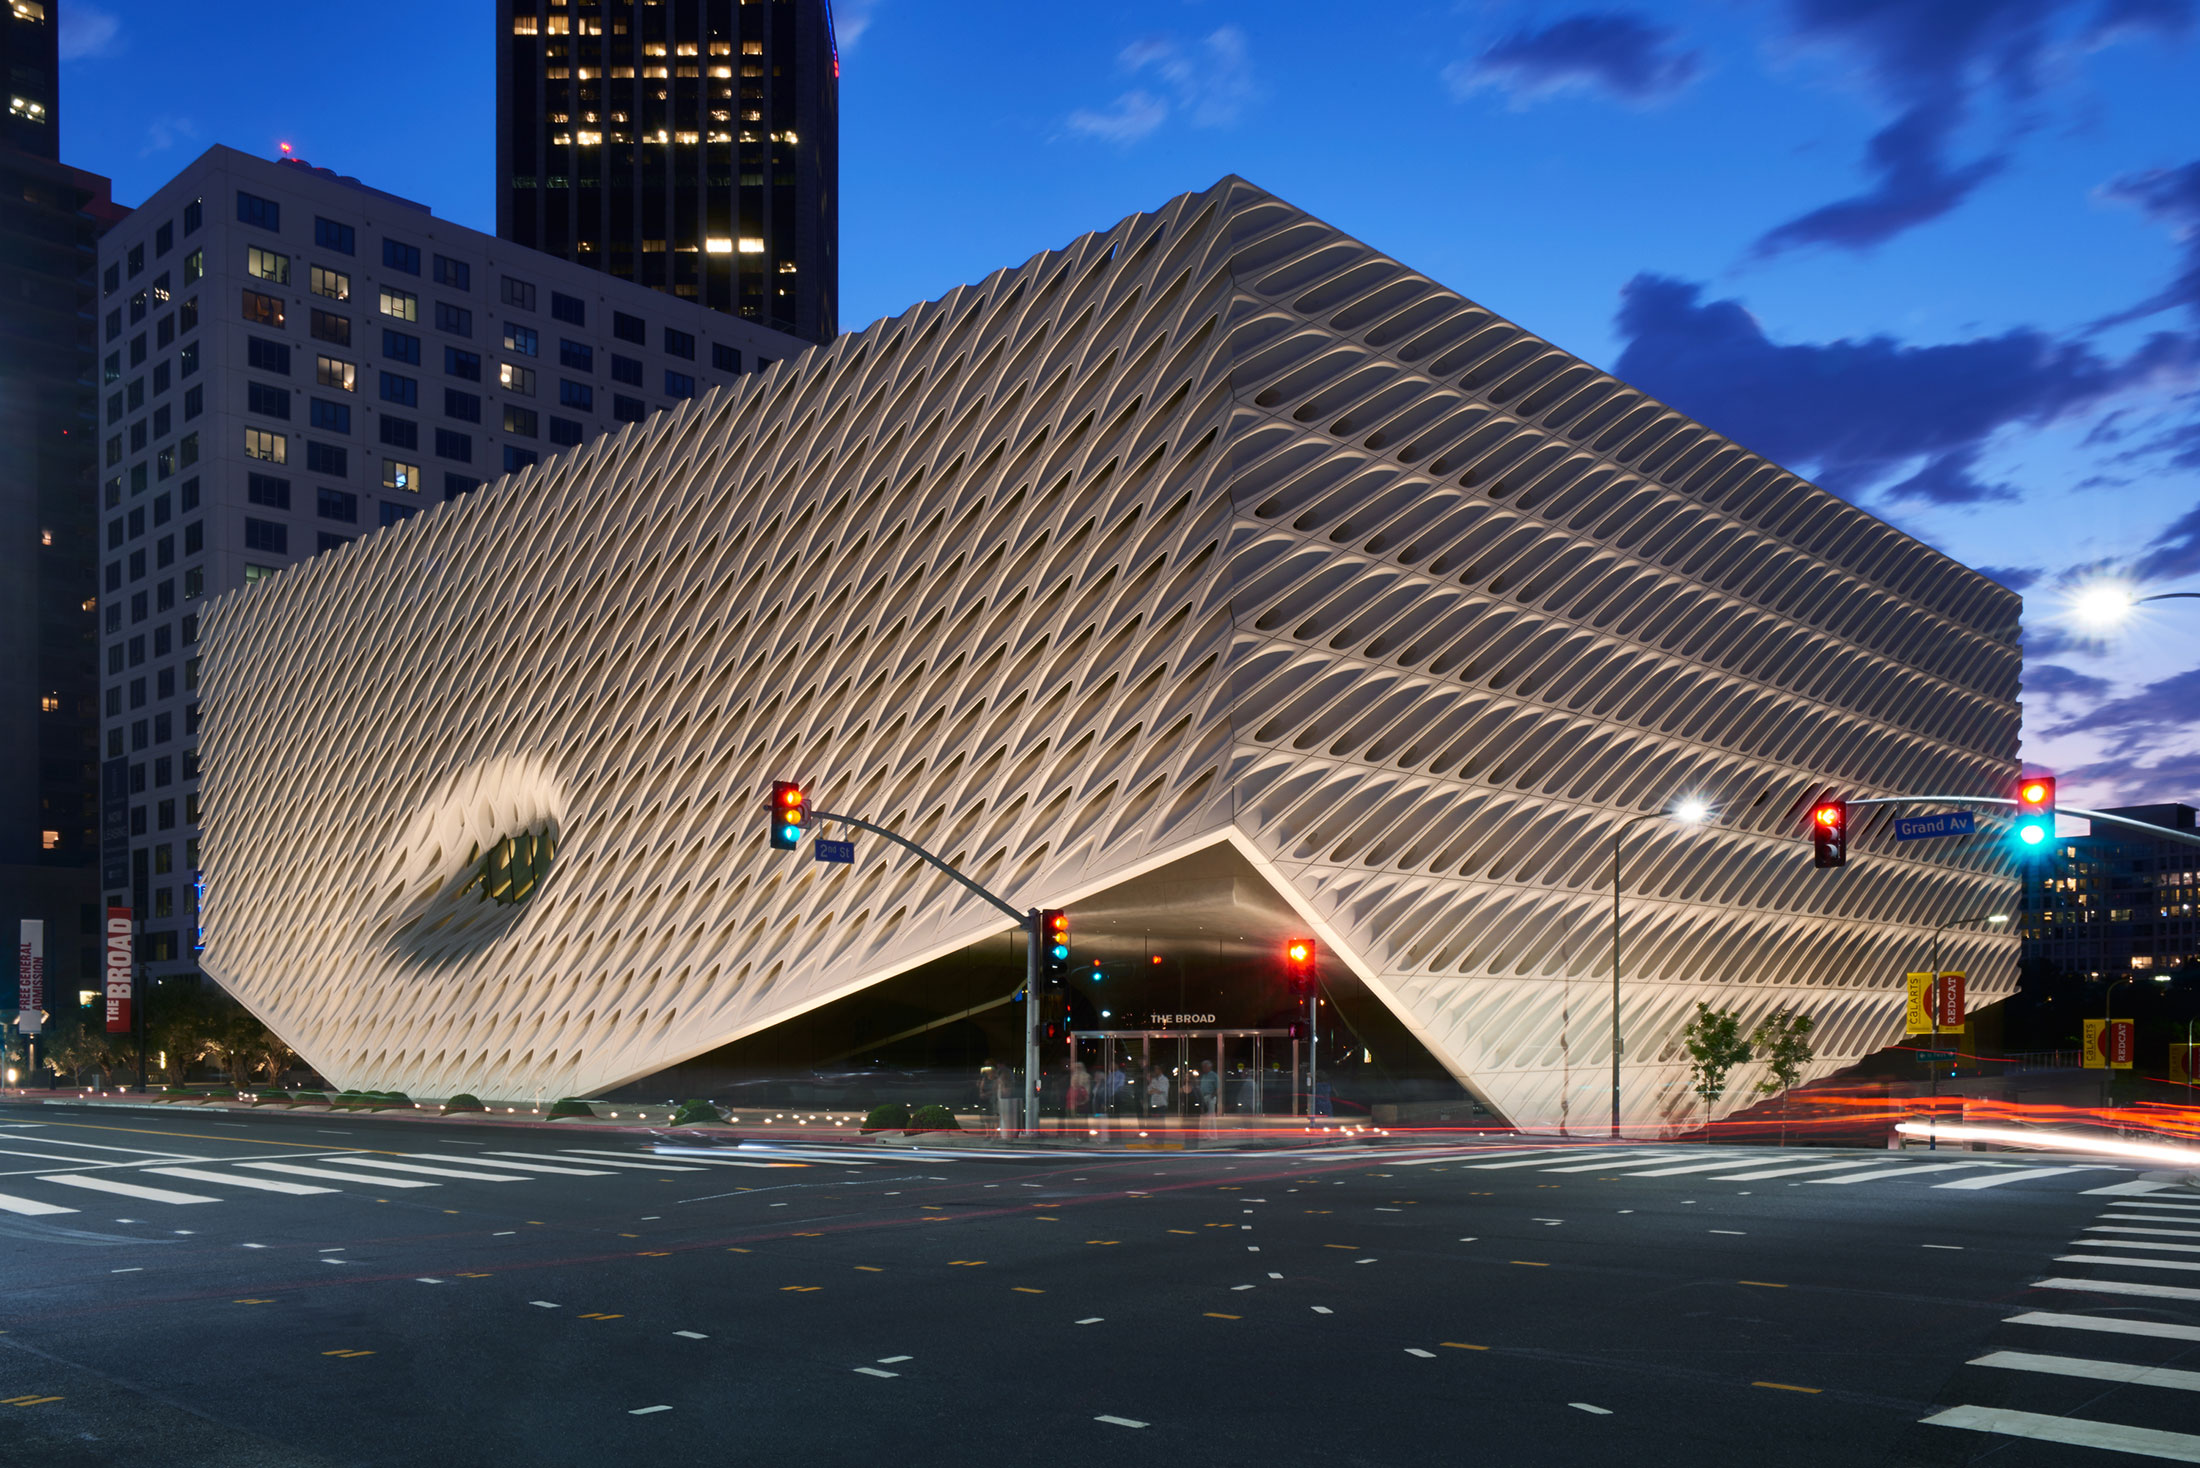 Essays about service art museums